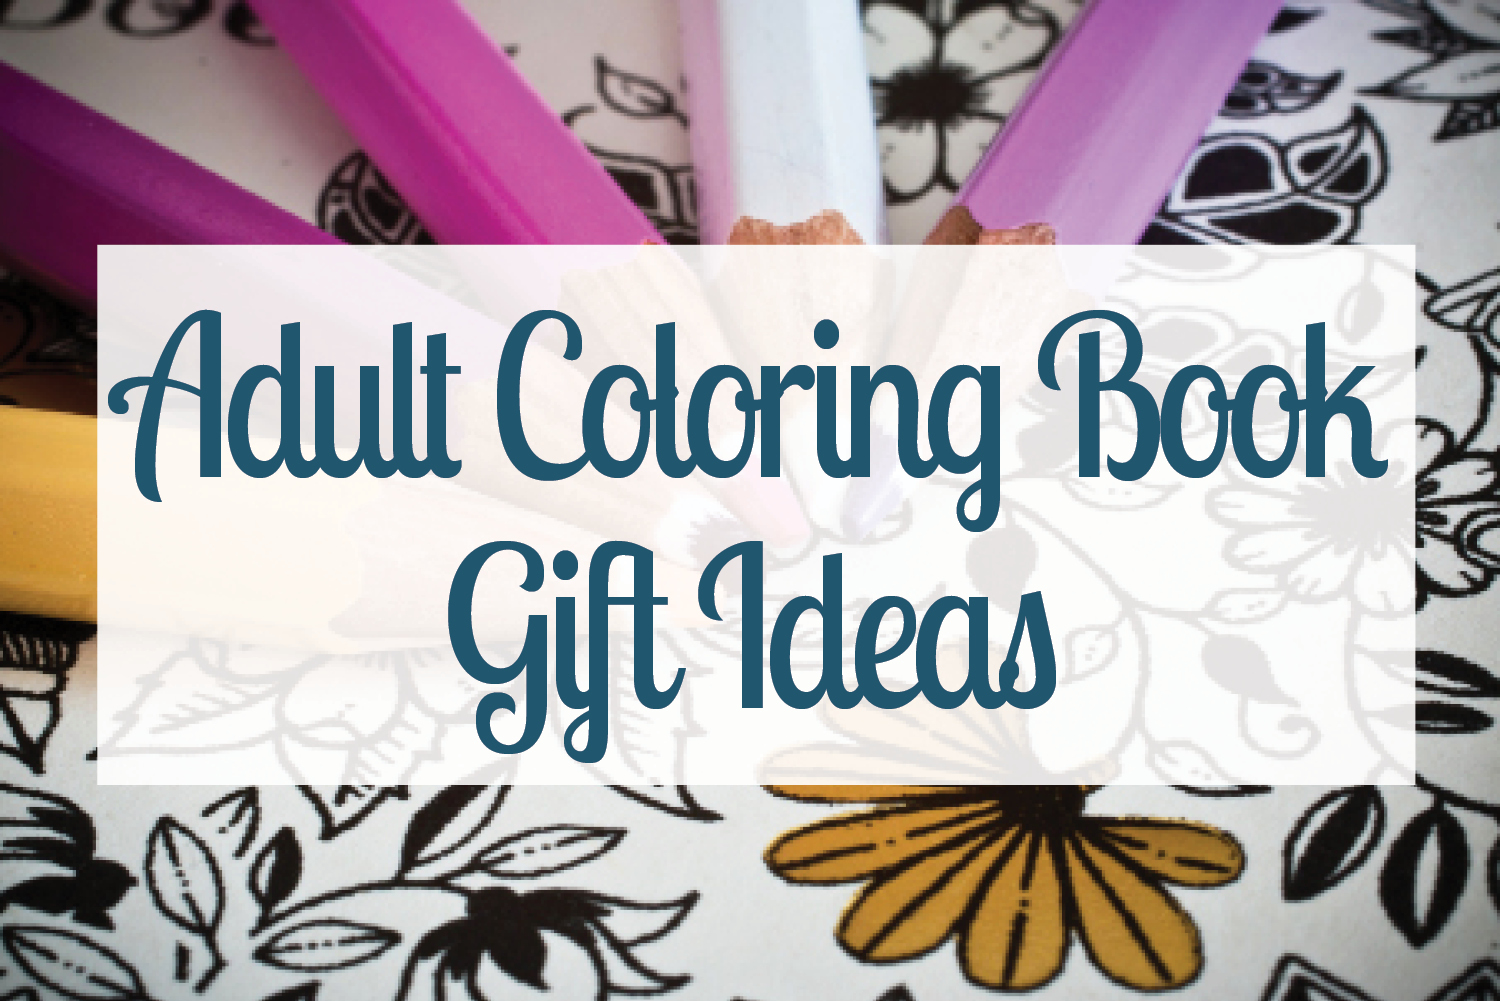 15 Amazing Adult Coloring Book Gift Ideas For Those Who Love To Color